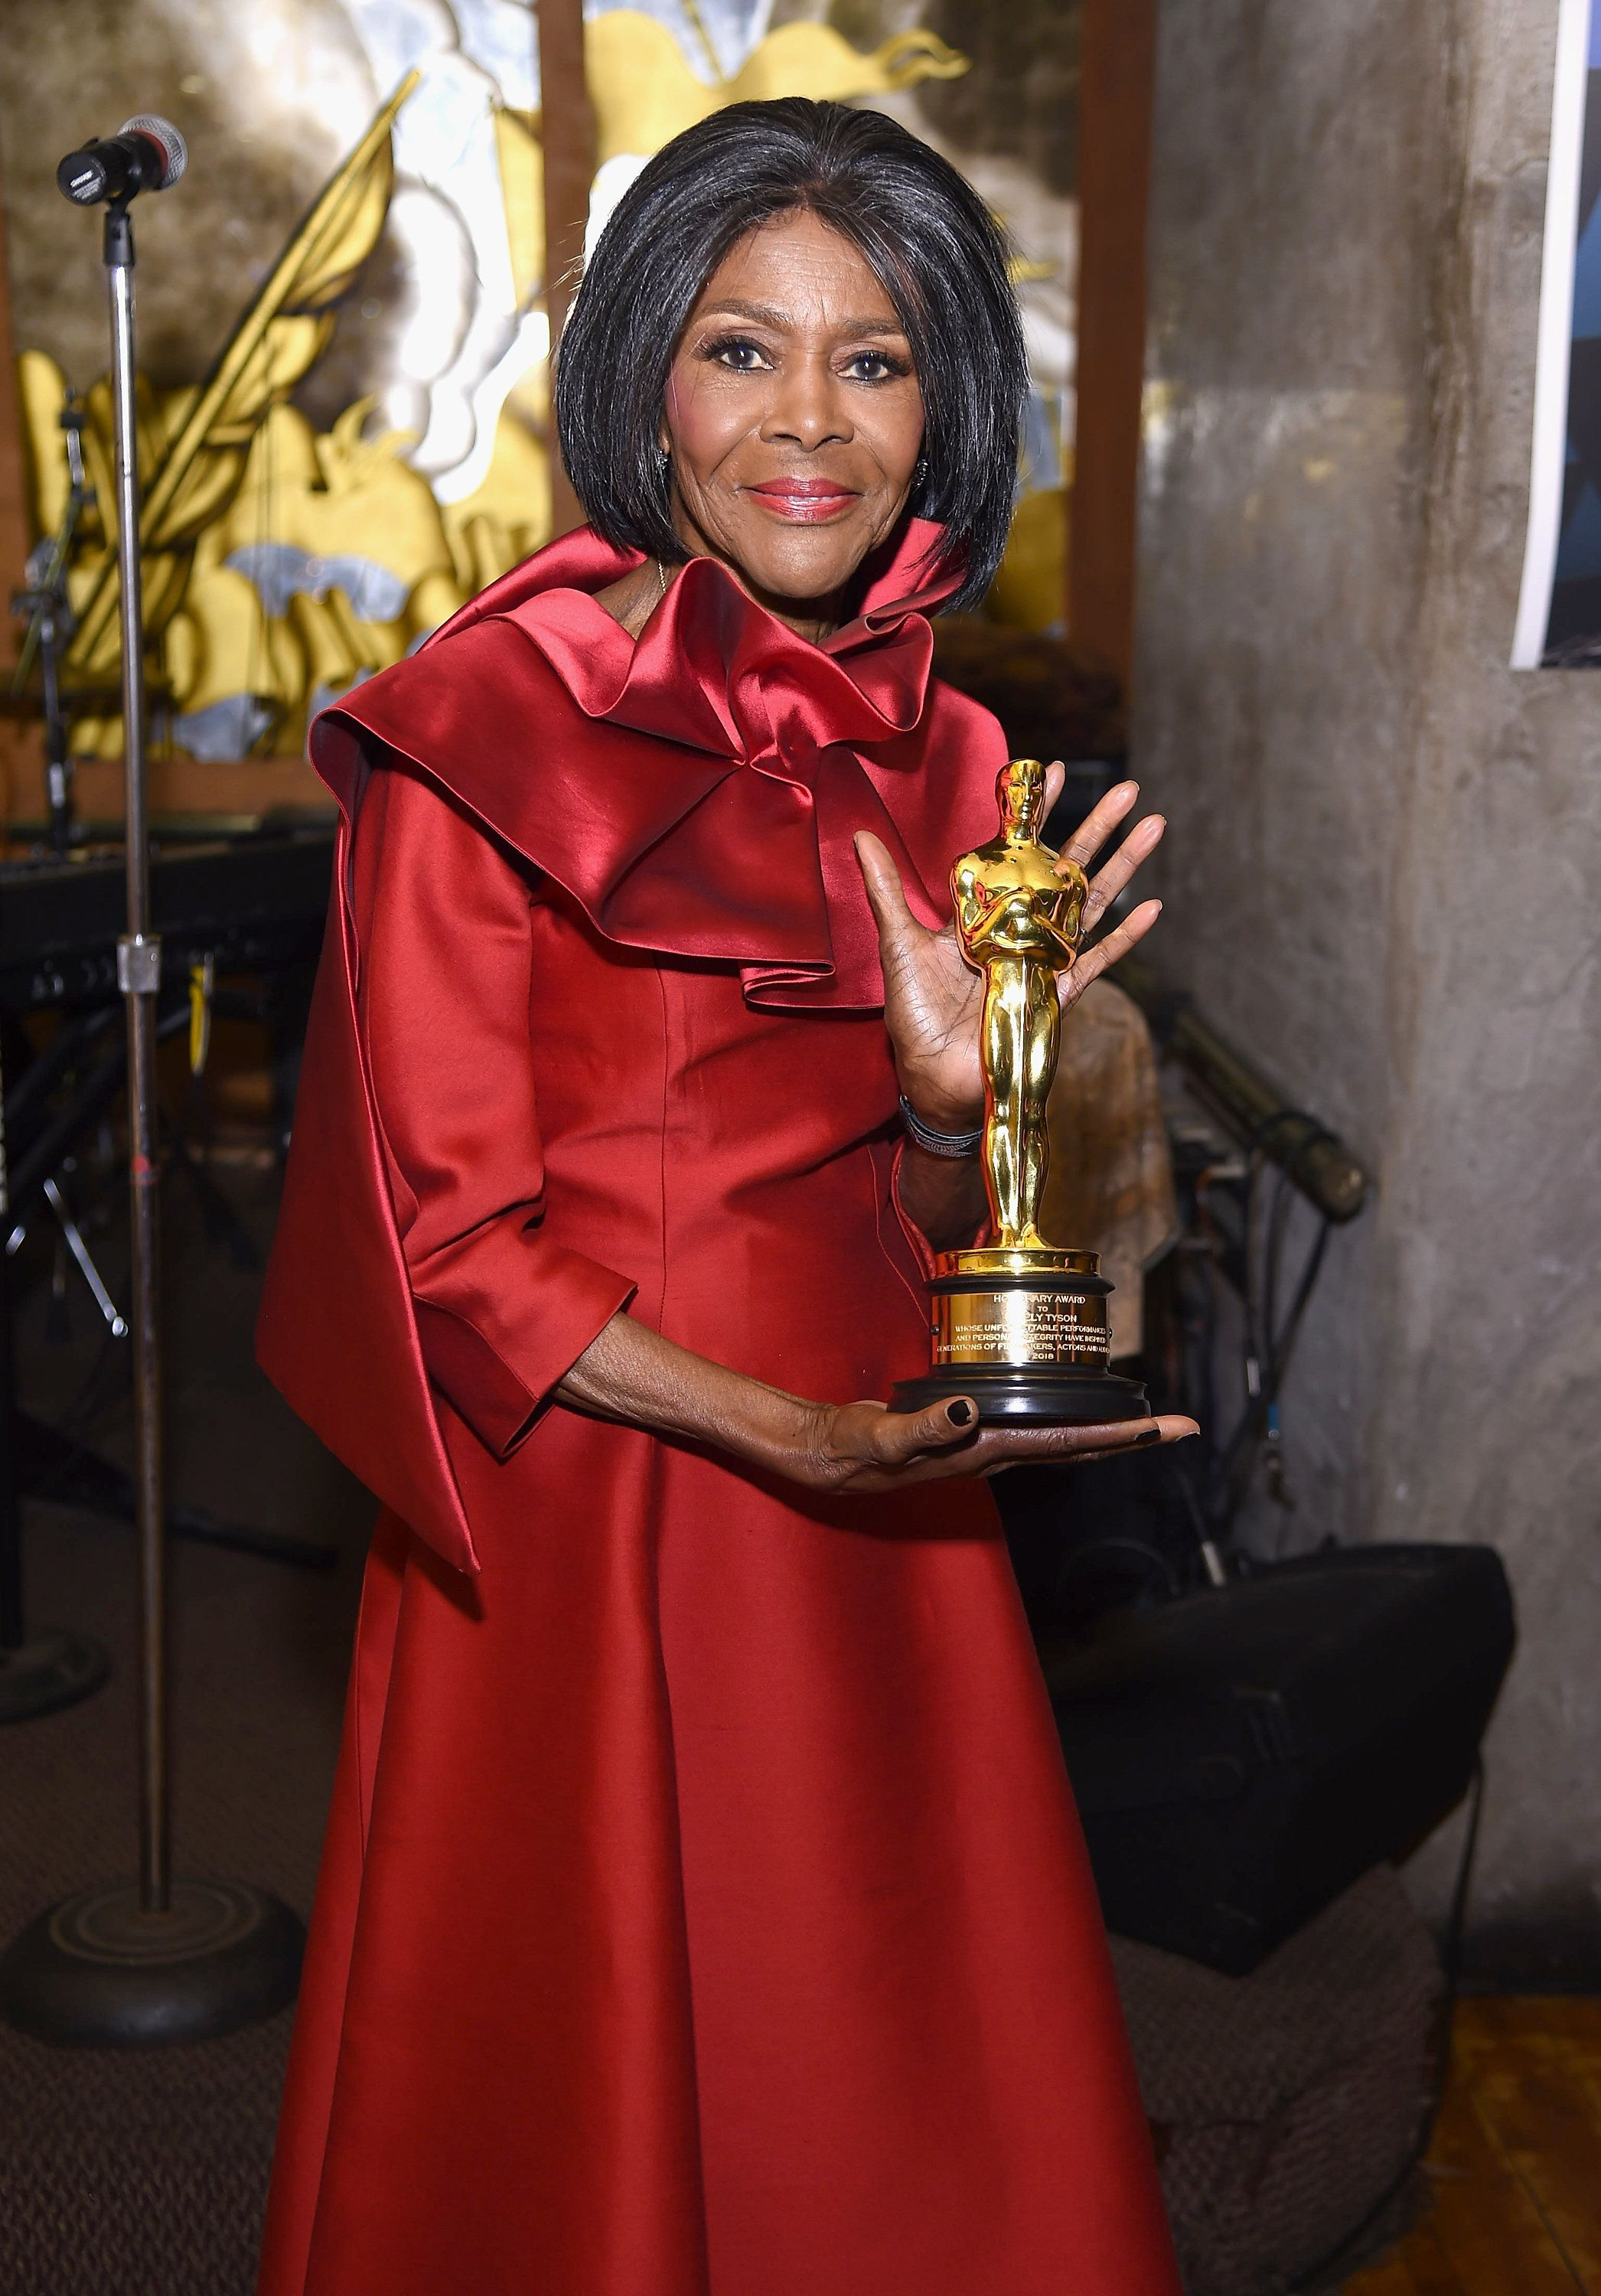 NEW YORK, NY - DECEMBER 08:  Cicely Tyson attends a private reception to celebrate her honorary Oscar on December 8, 2018 in New York City.  (Photo by Gary Gershoff/Getty Images)